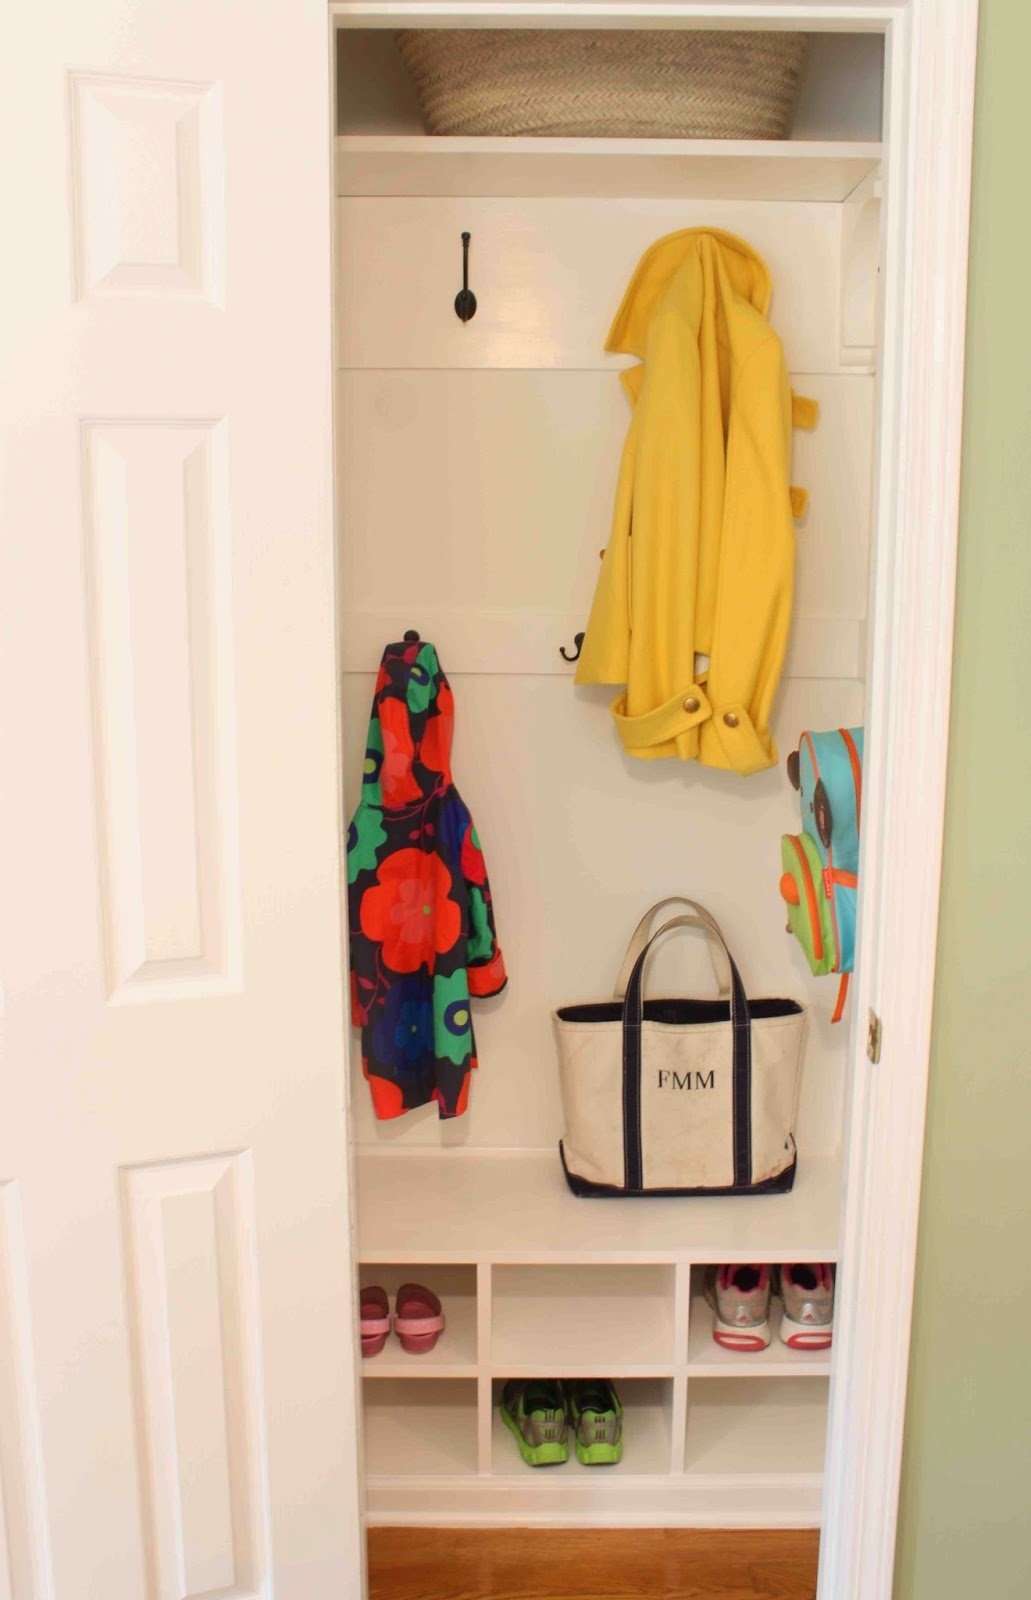 hall closet organization ideas and hall closet storage ideas - add shelving and cubicles